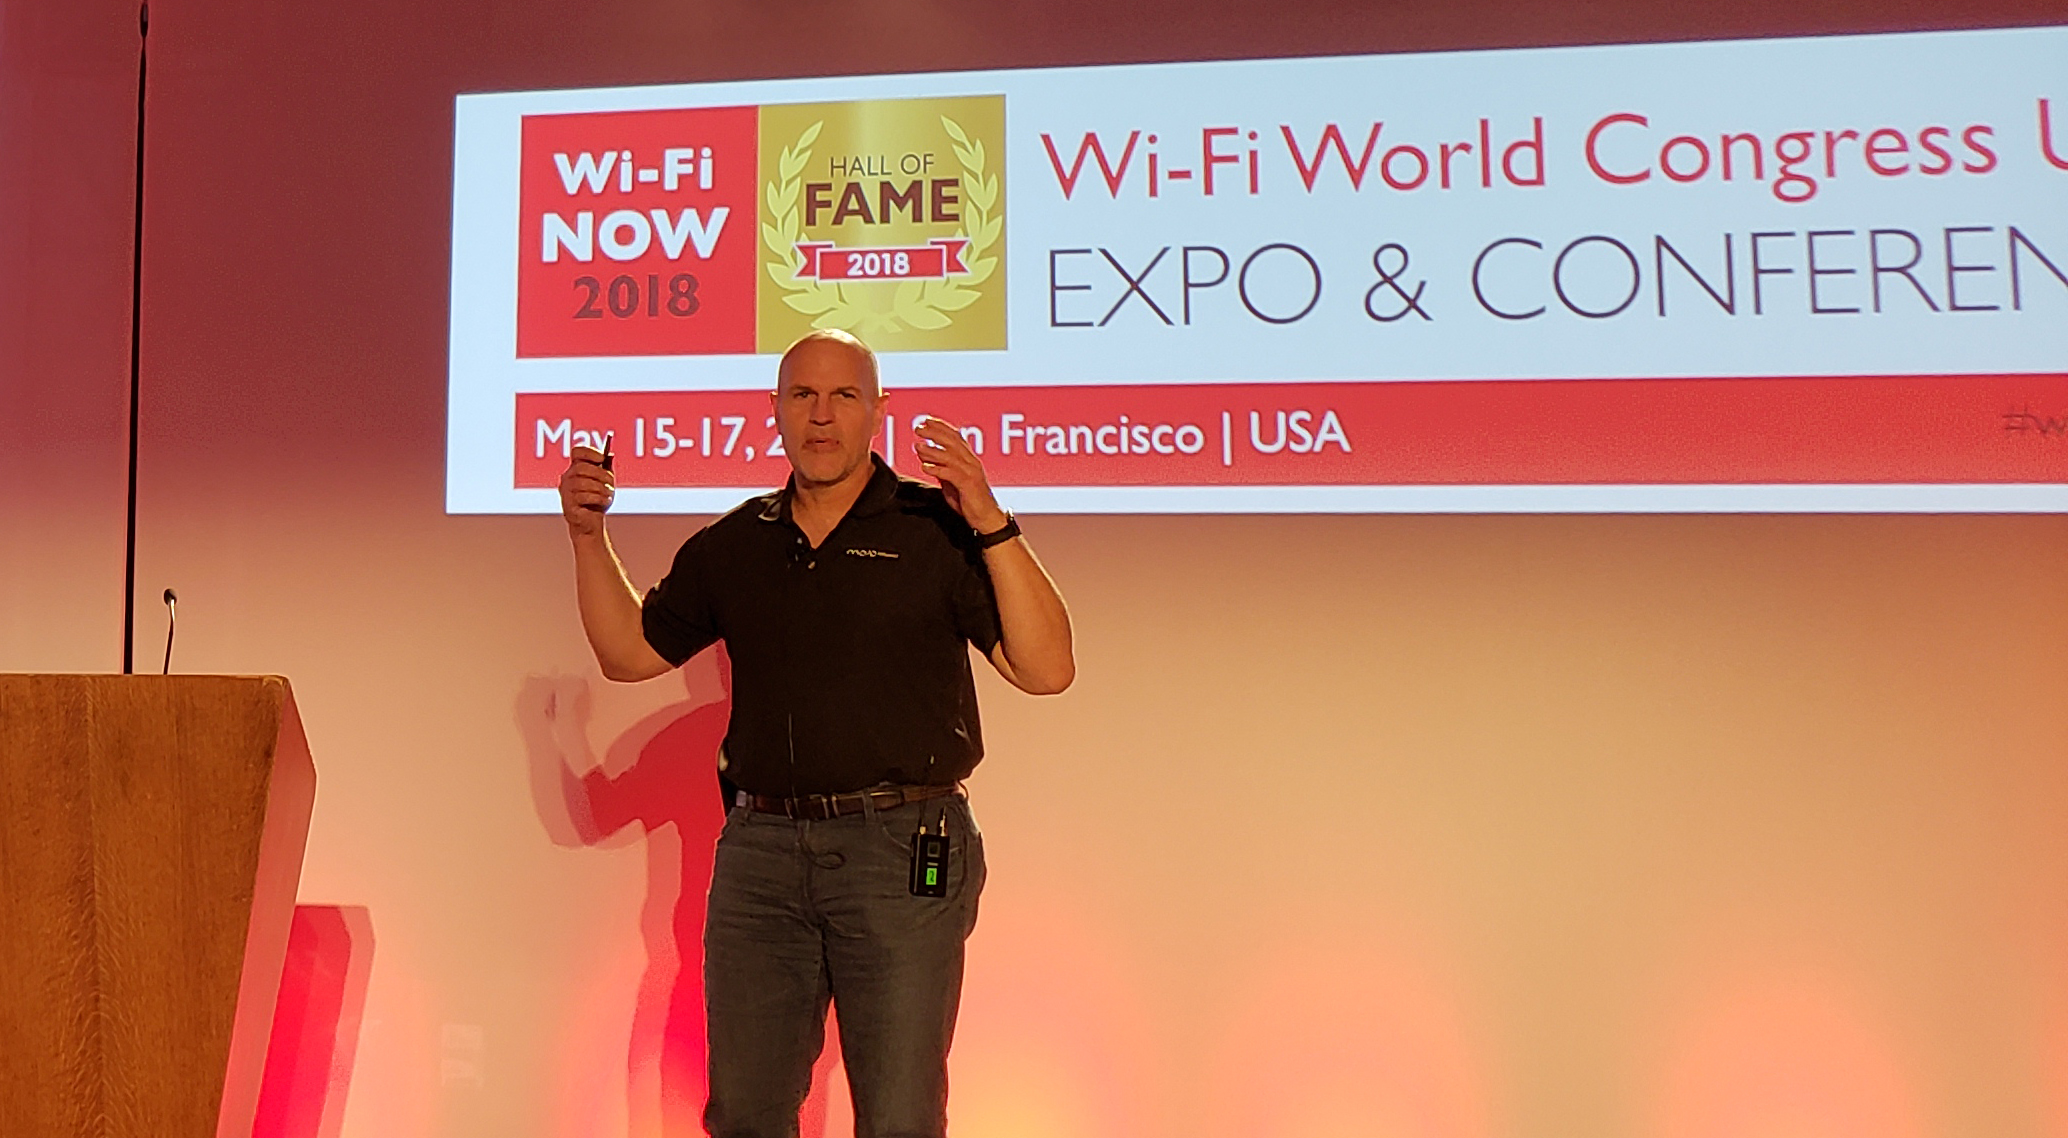 """Machine learning requires mounds of data to be able to characterize problems, craft and apply fixes, Mojo Networks CEO tells Wi-Fi industry.                      Normal    0                false    false    false       EN-US    X-NONE    X-NONE                                                                                                                                                                                                                                                                                                                                                                                                                                                                                                                                                                                                                                                                                                                                                                                                                                                                                                                                                                                                                                                                                                                                                                                                                                                                  /* Style Definitions */  table.MsoNormalTable {mso-style-name:""""Table Normal""""; mso-tstyle-rowband-size:0; mso-tstyle-colband-size:0; mso-style-noshow:yes; mso-style-priority:99; mso-style-parent:""""""""; mso-padding-alt:0in 5.4pt 0in 5.4pt; mso-para-margin-top:0in; mso-para-margin-right:0in; mso-para-margin-bottom:8.0pt; mso-para-margin-left:0in; line-height:107%; mso-pagination:widow-orphan; font-size:11.0pt; font-family:""""Calibri"""",sans-serif; mso-ascii-font-family:Calibri; mso-ascii-theme-font:minor-latin; mso-hansi-font-family:Calibri; """